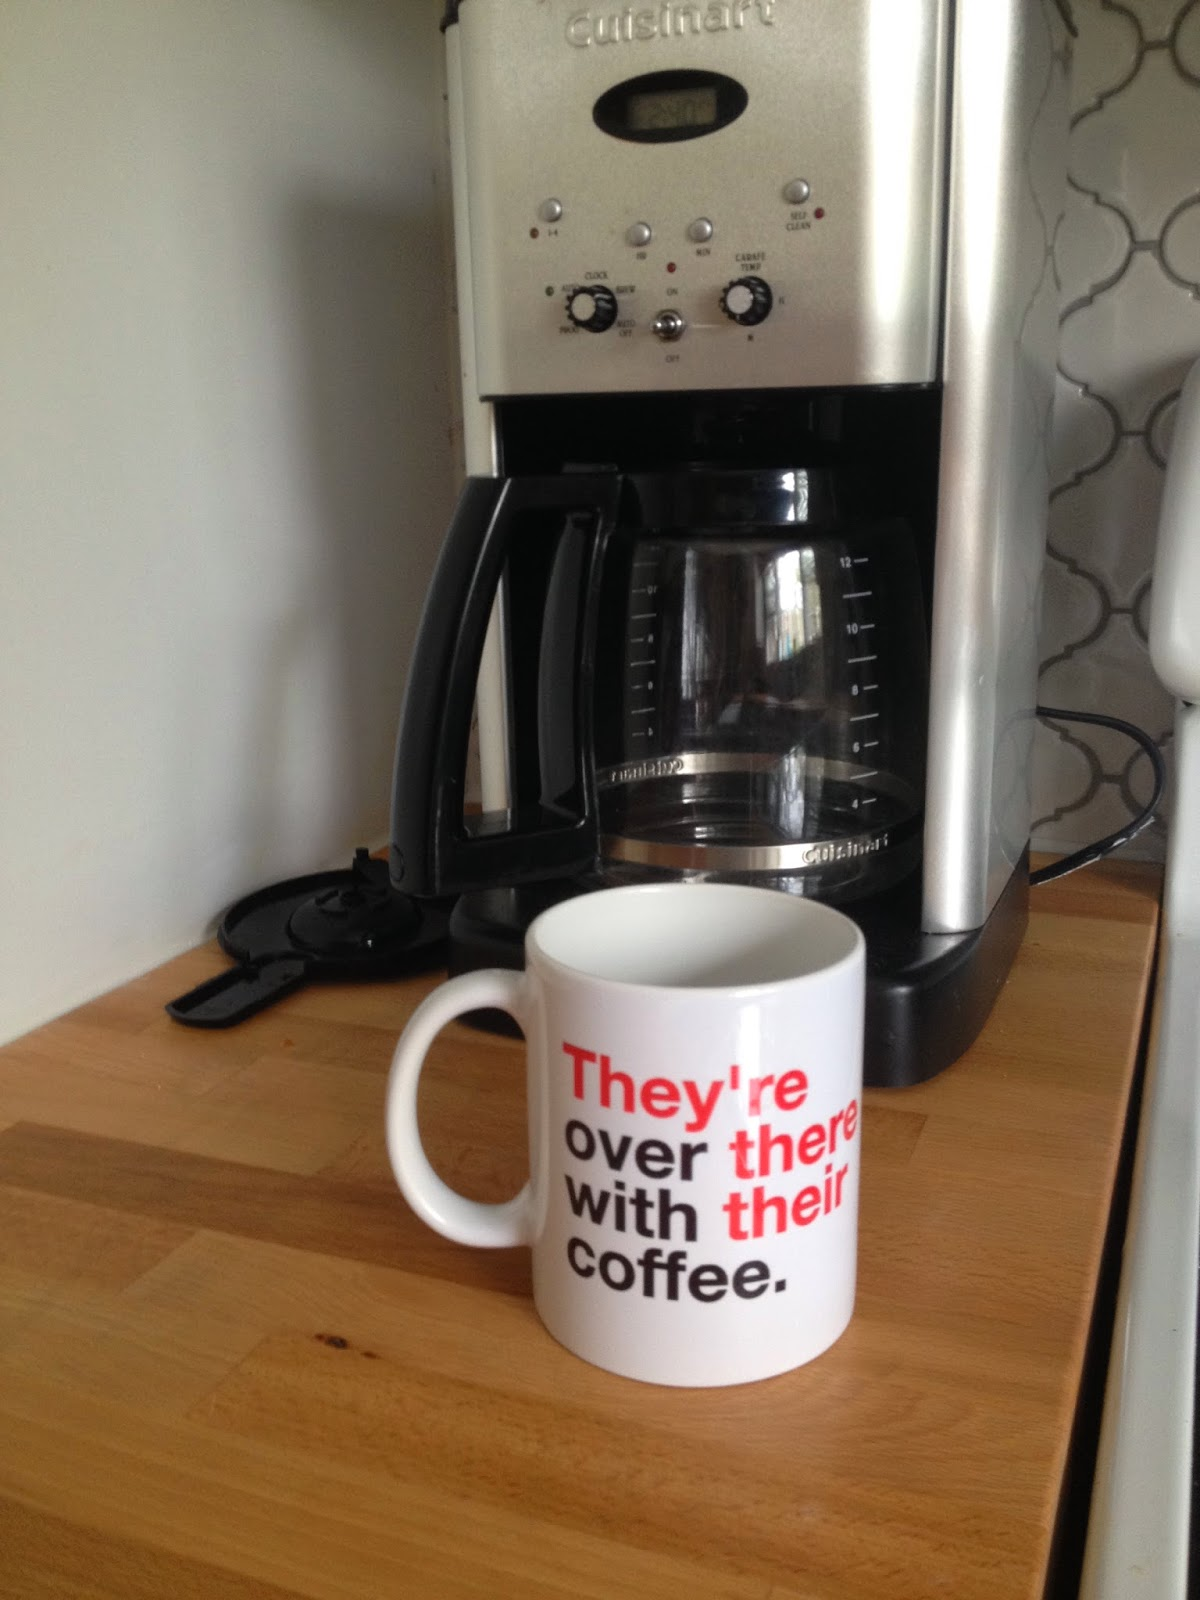 http://www.zazzle.com/grammar_geek_theyre_there_their_coffee_mugs-168759867777268535